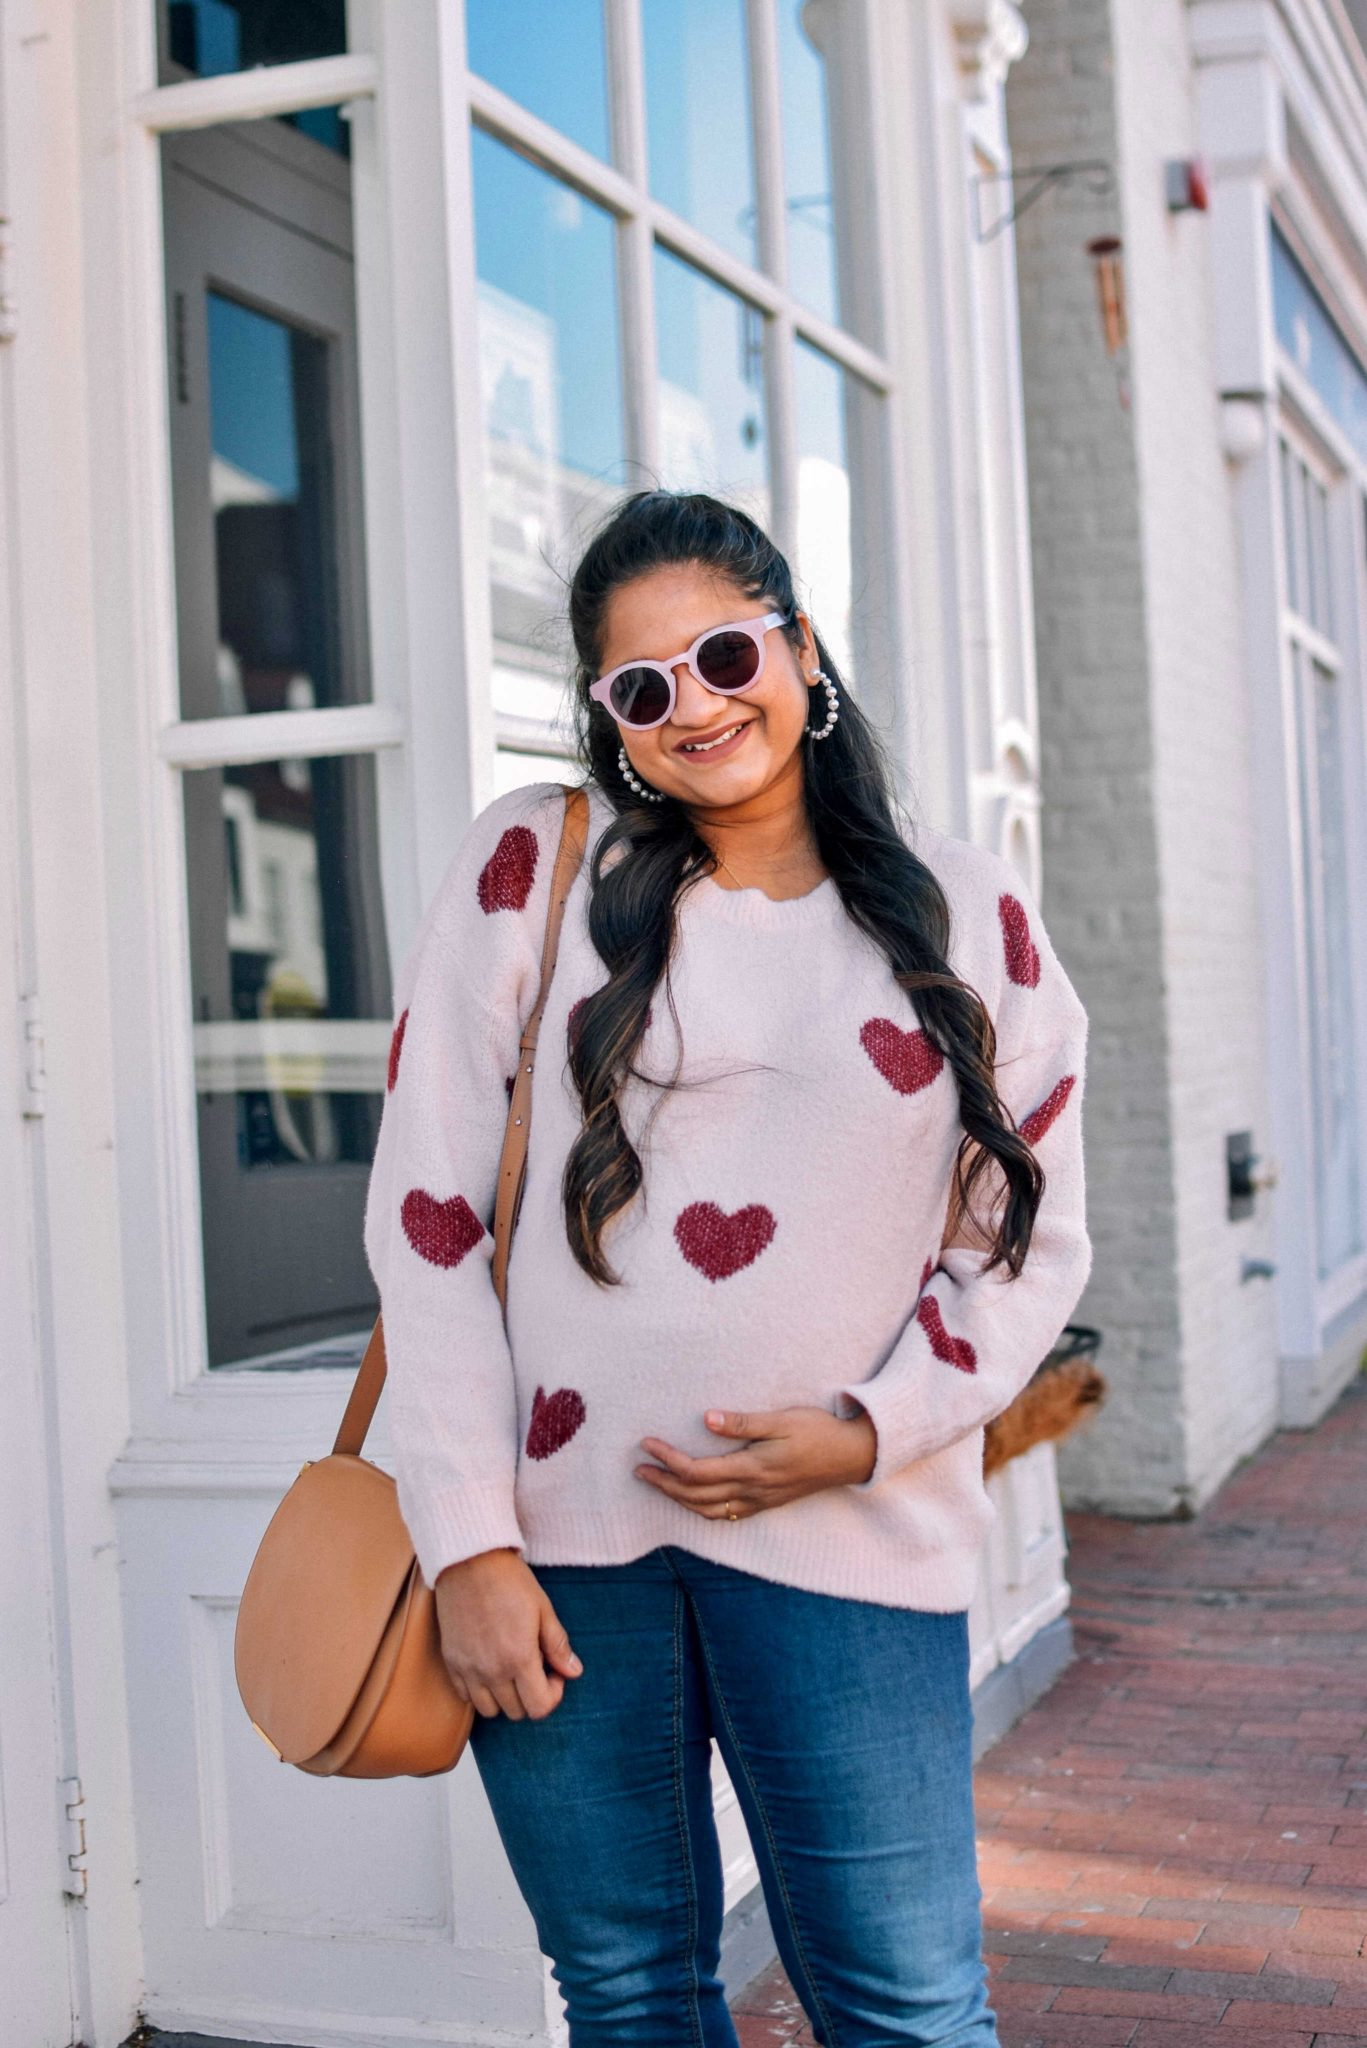 pregnancy Valentines day outfit-wearing pinklilly fuzzy Heart Pink Sweater, mango maternity jeans, Cuyana saddle bag, Illesteva pink sunglasses |Valentine's Day Outfit idea by popular Maryland modest fashion blog, Dreaming Loud: image of a woman wearing a heart print sweater, maternity skinny jeans, red suede ankle boots, and a Cuyana bag.